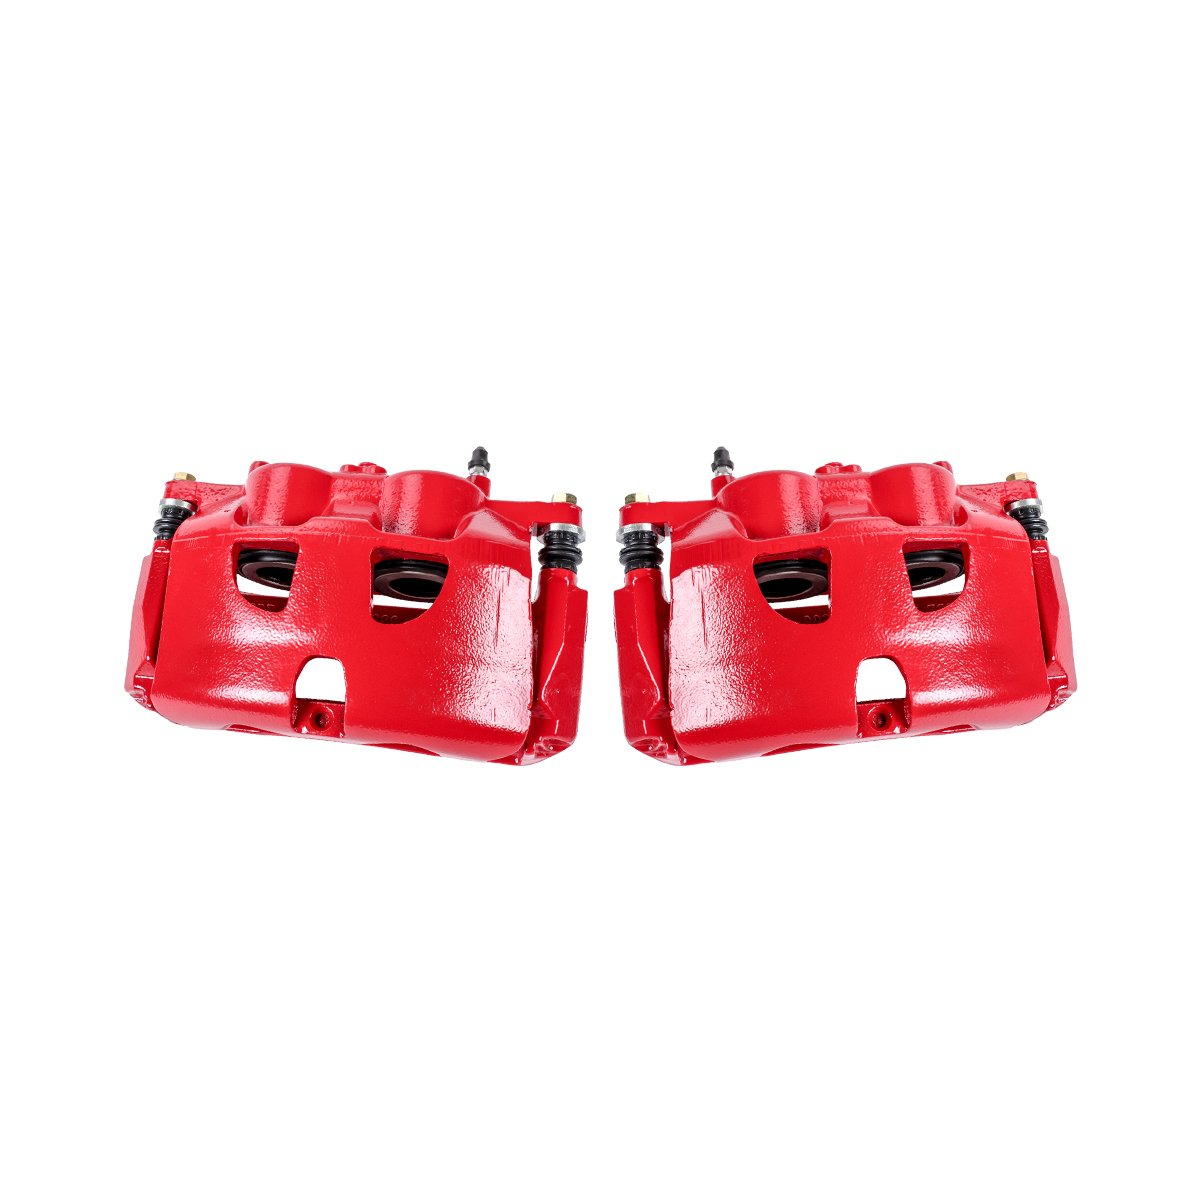 CCK01574 2 FRONT Performance Grade Red Powder Coated Semi-Loaded Caliper Assembly Pair Set